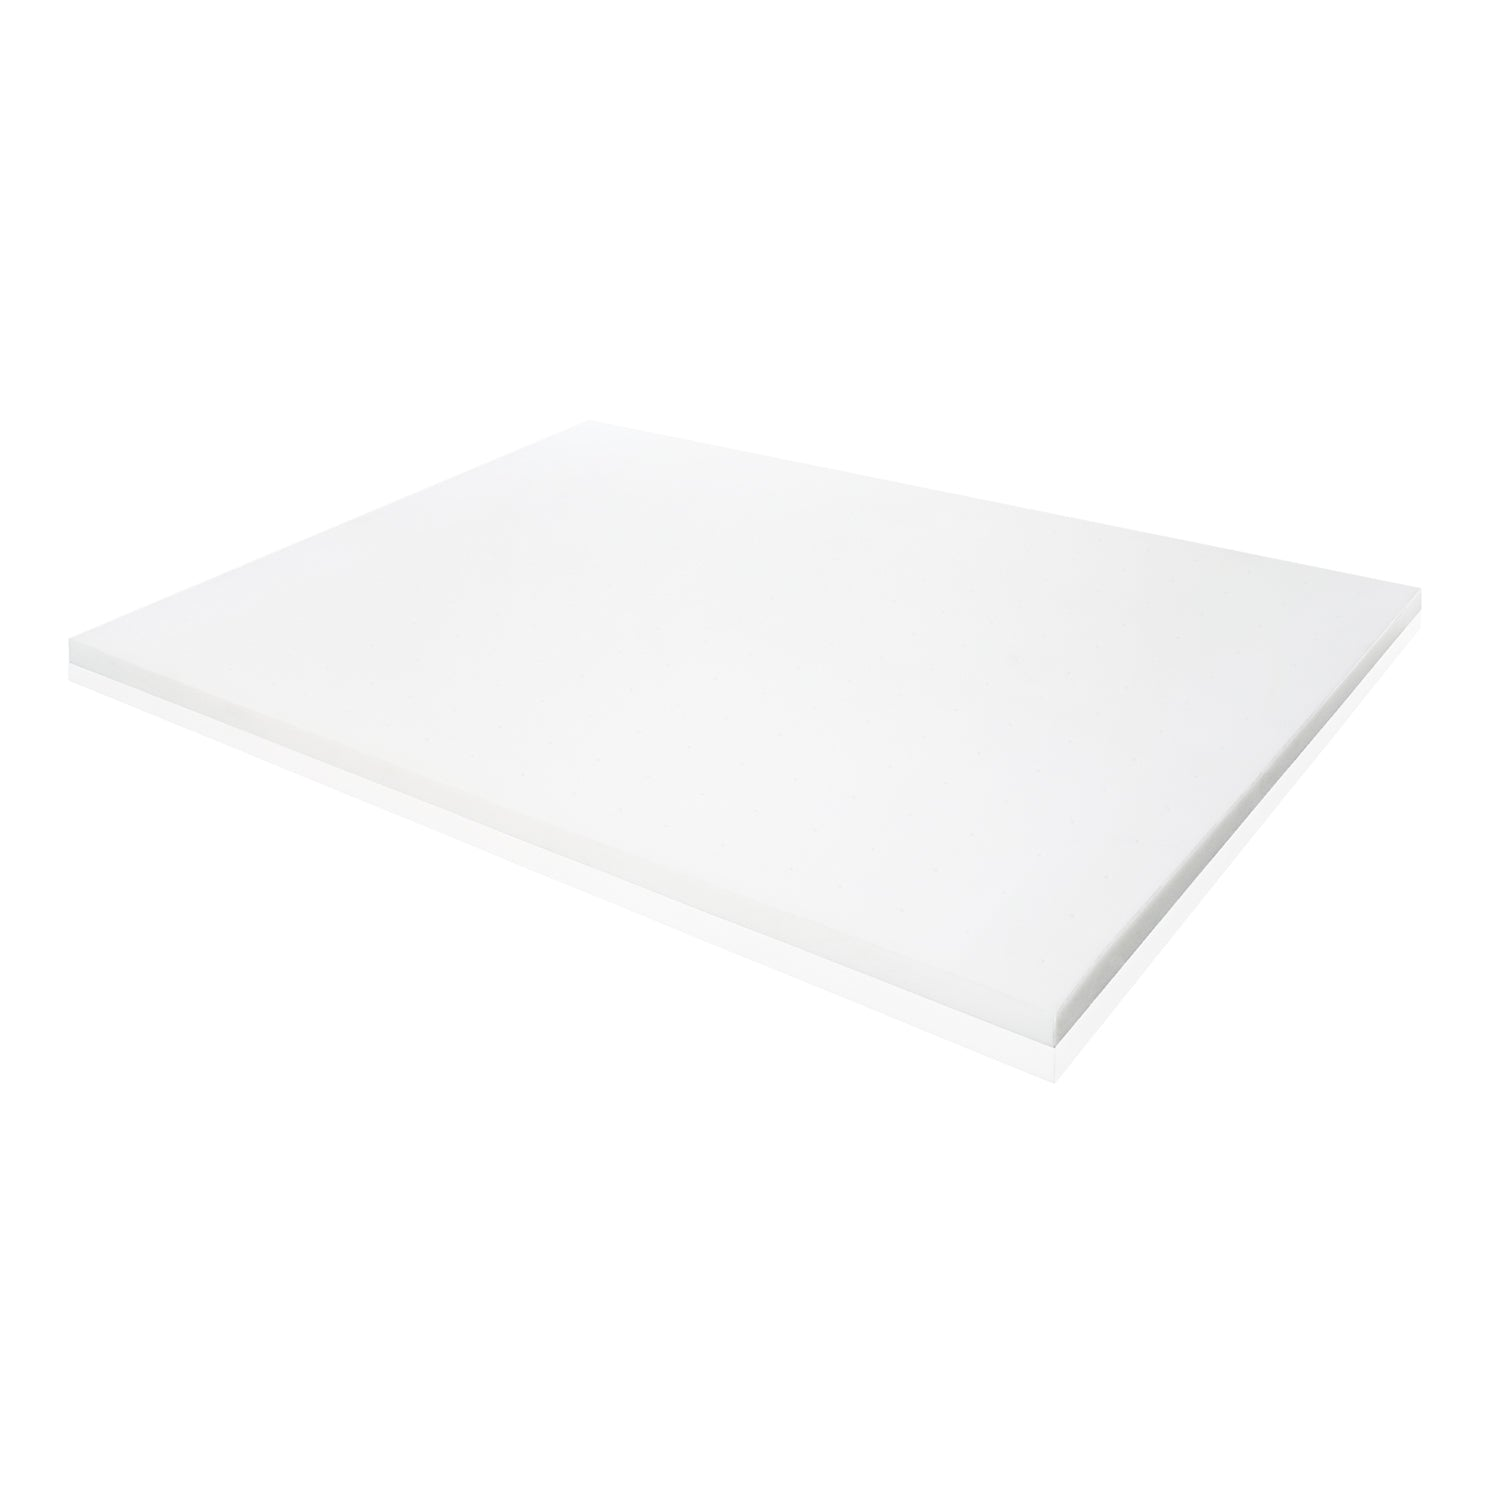 Malouf Isolus 2 Inch Memory Foam Mattress Topper